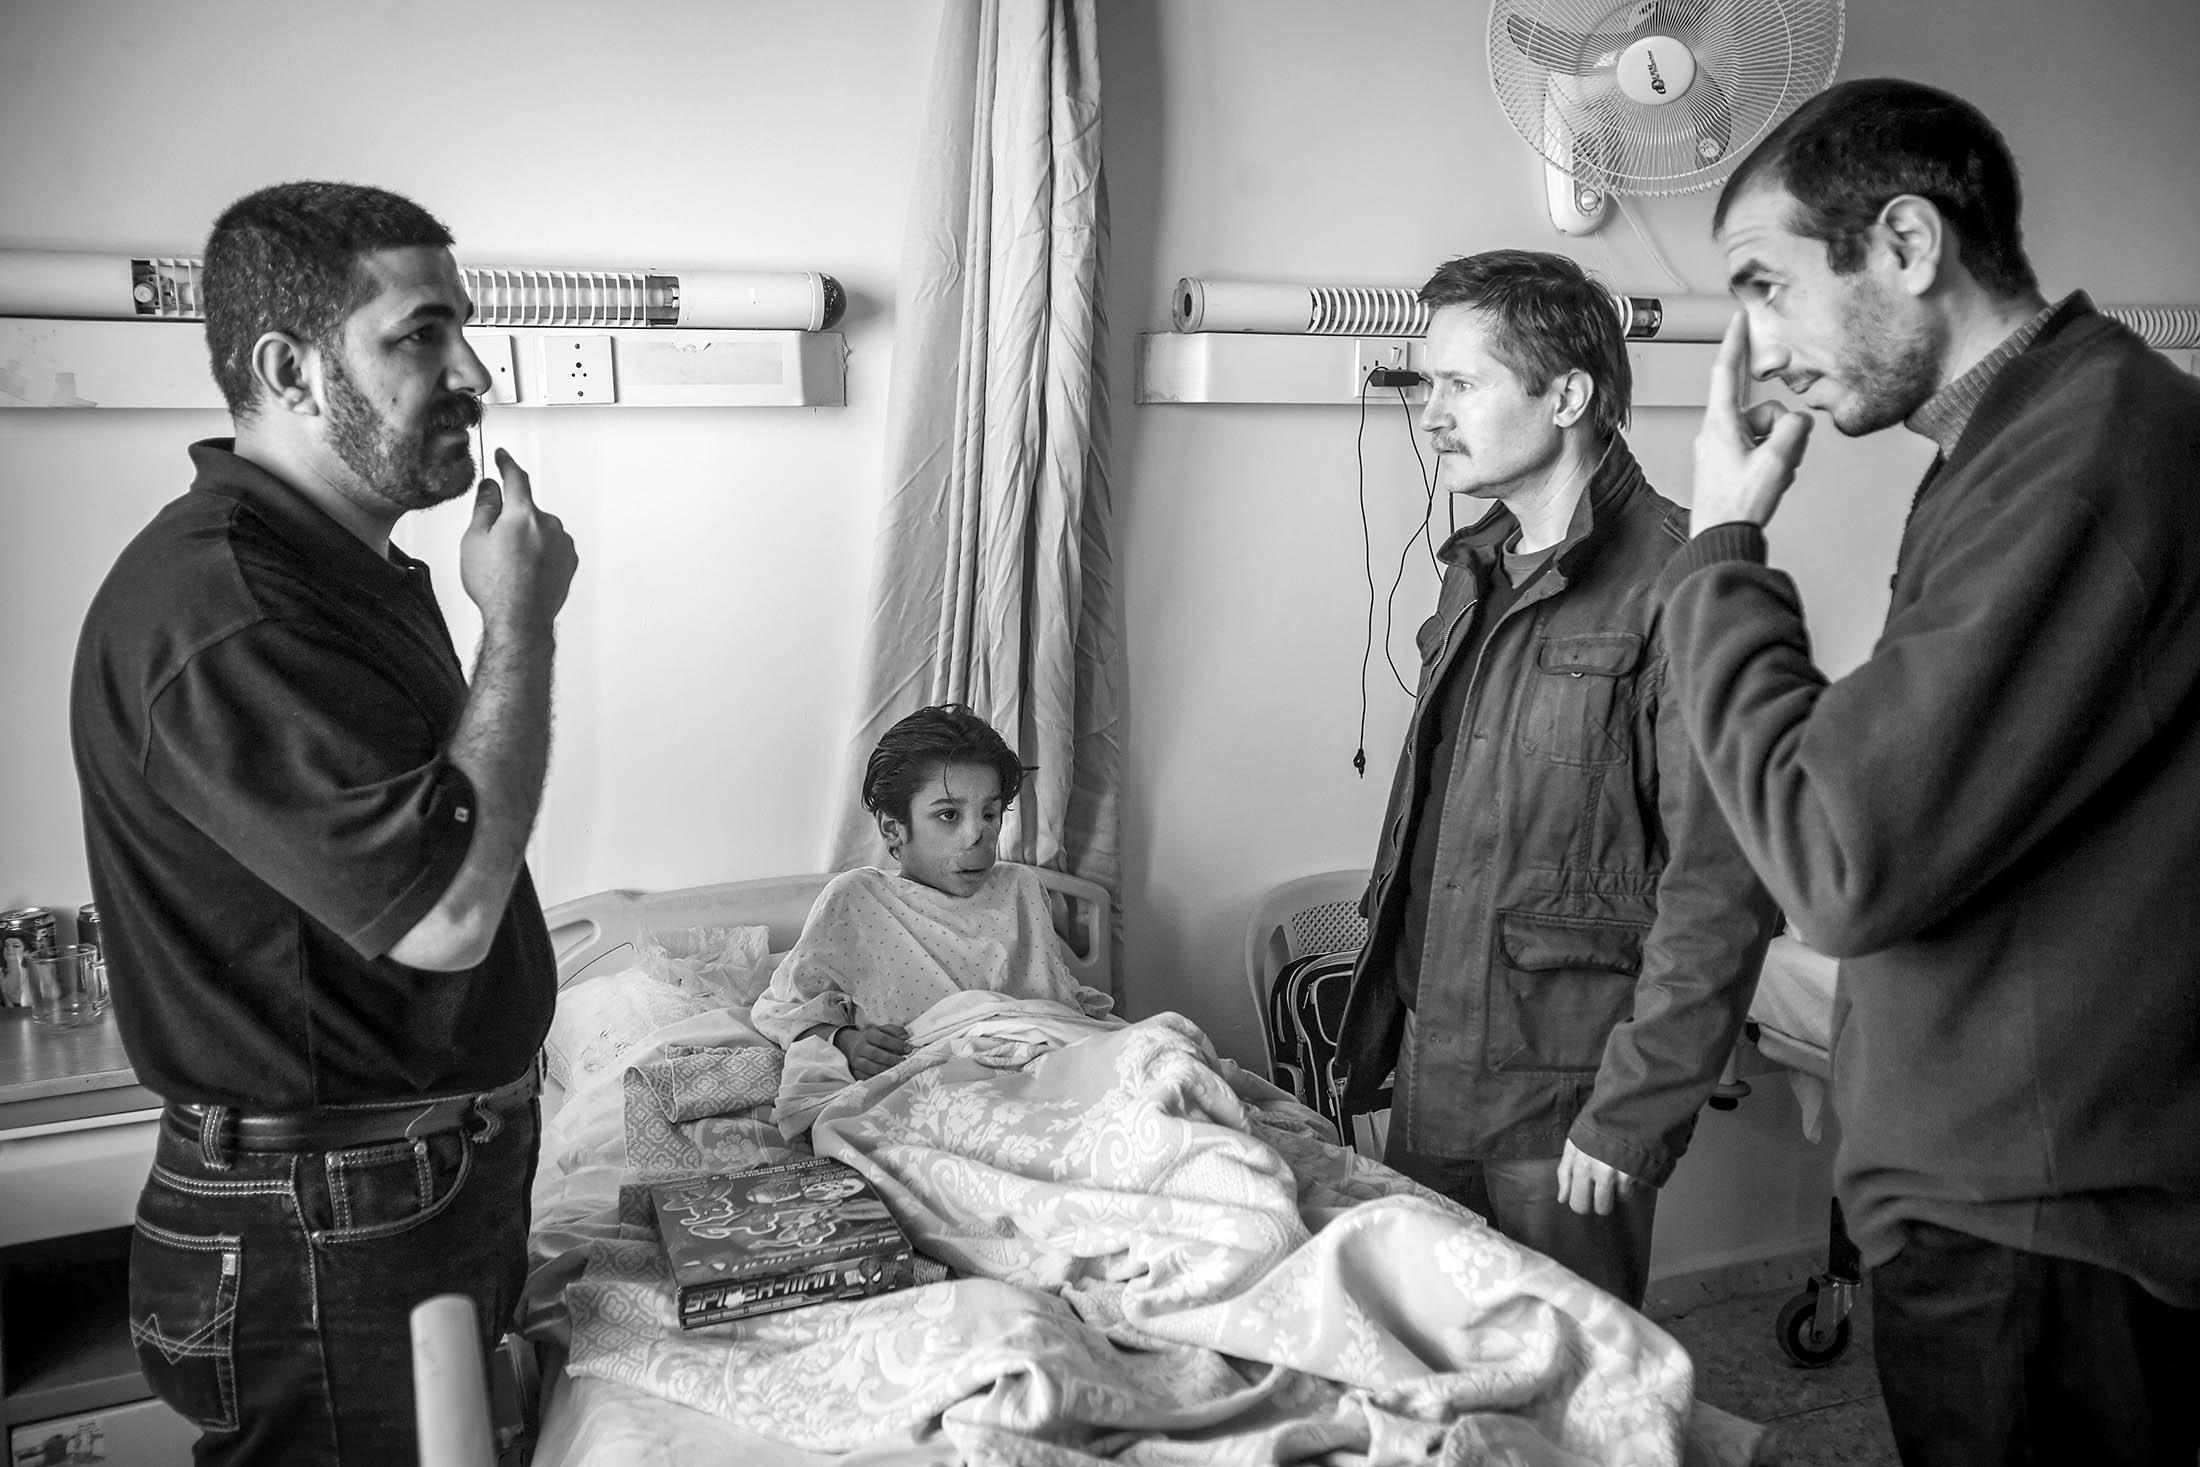 Dr. Andre Eckardt, a German surgeon flew in to help patients, consults with Abdullah and his father through an interpreter before surgery.